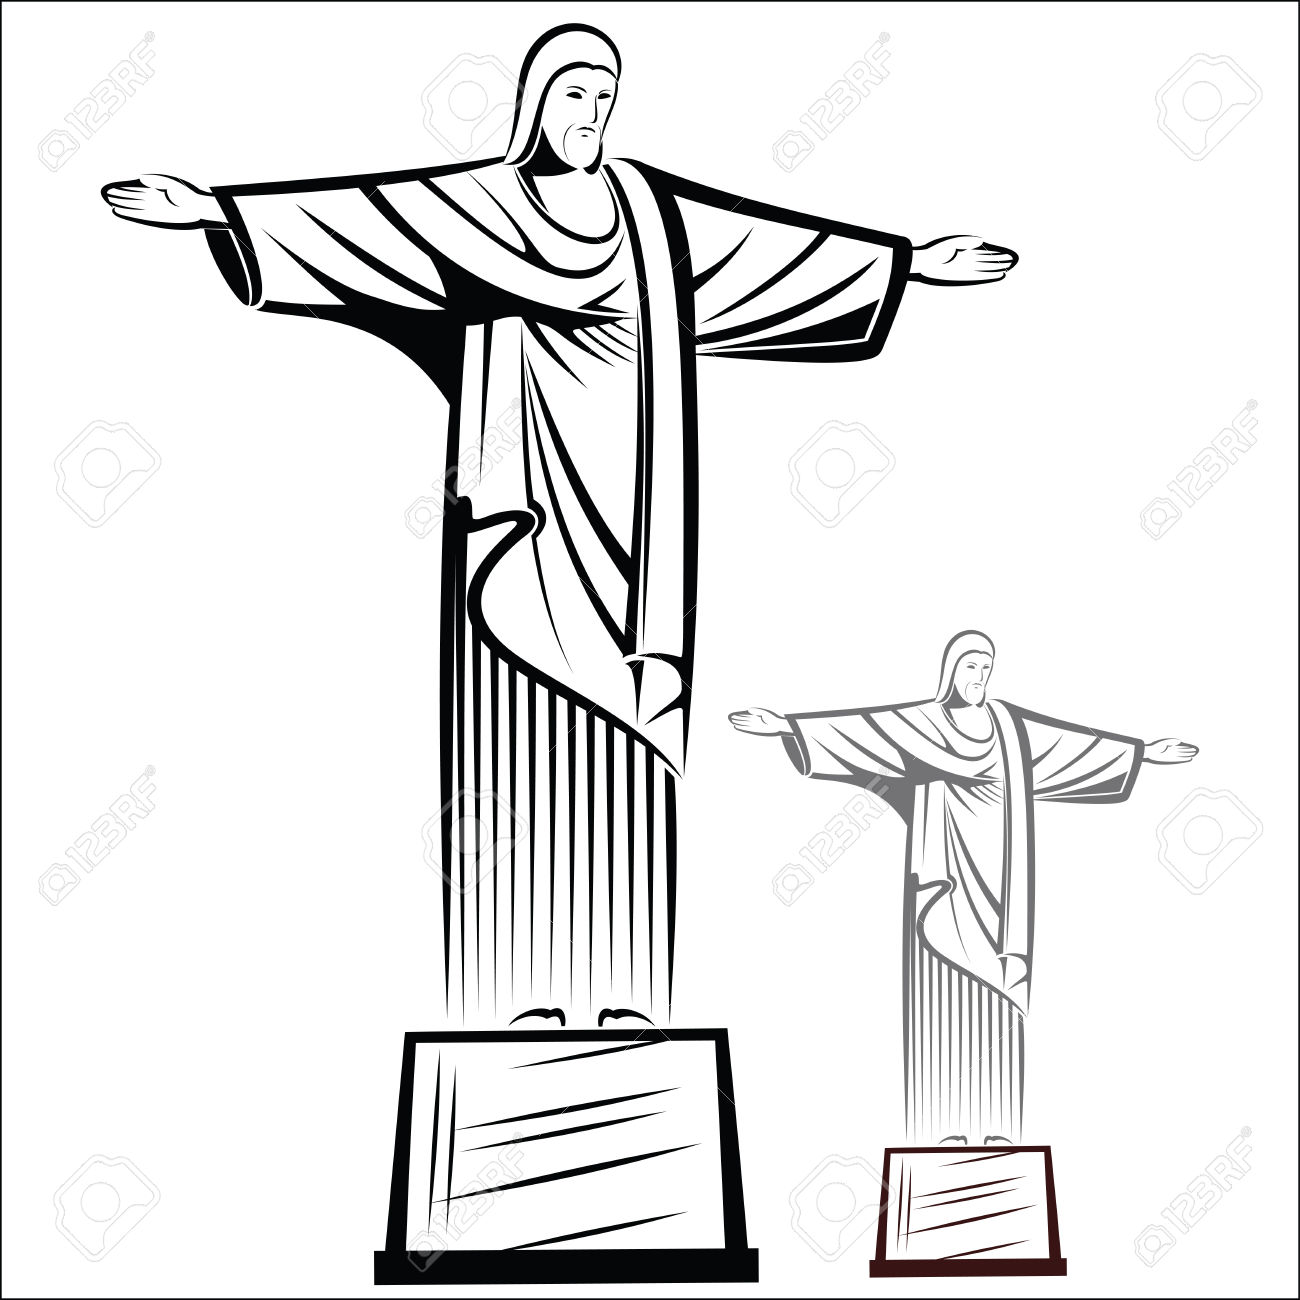 Christ The Redeemer Royalty Free Cliparts, Vectors, And Stock.